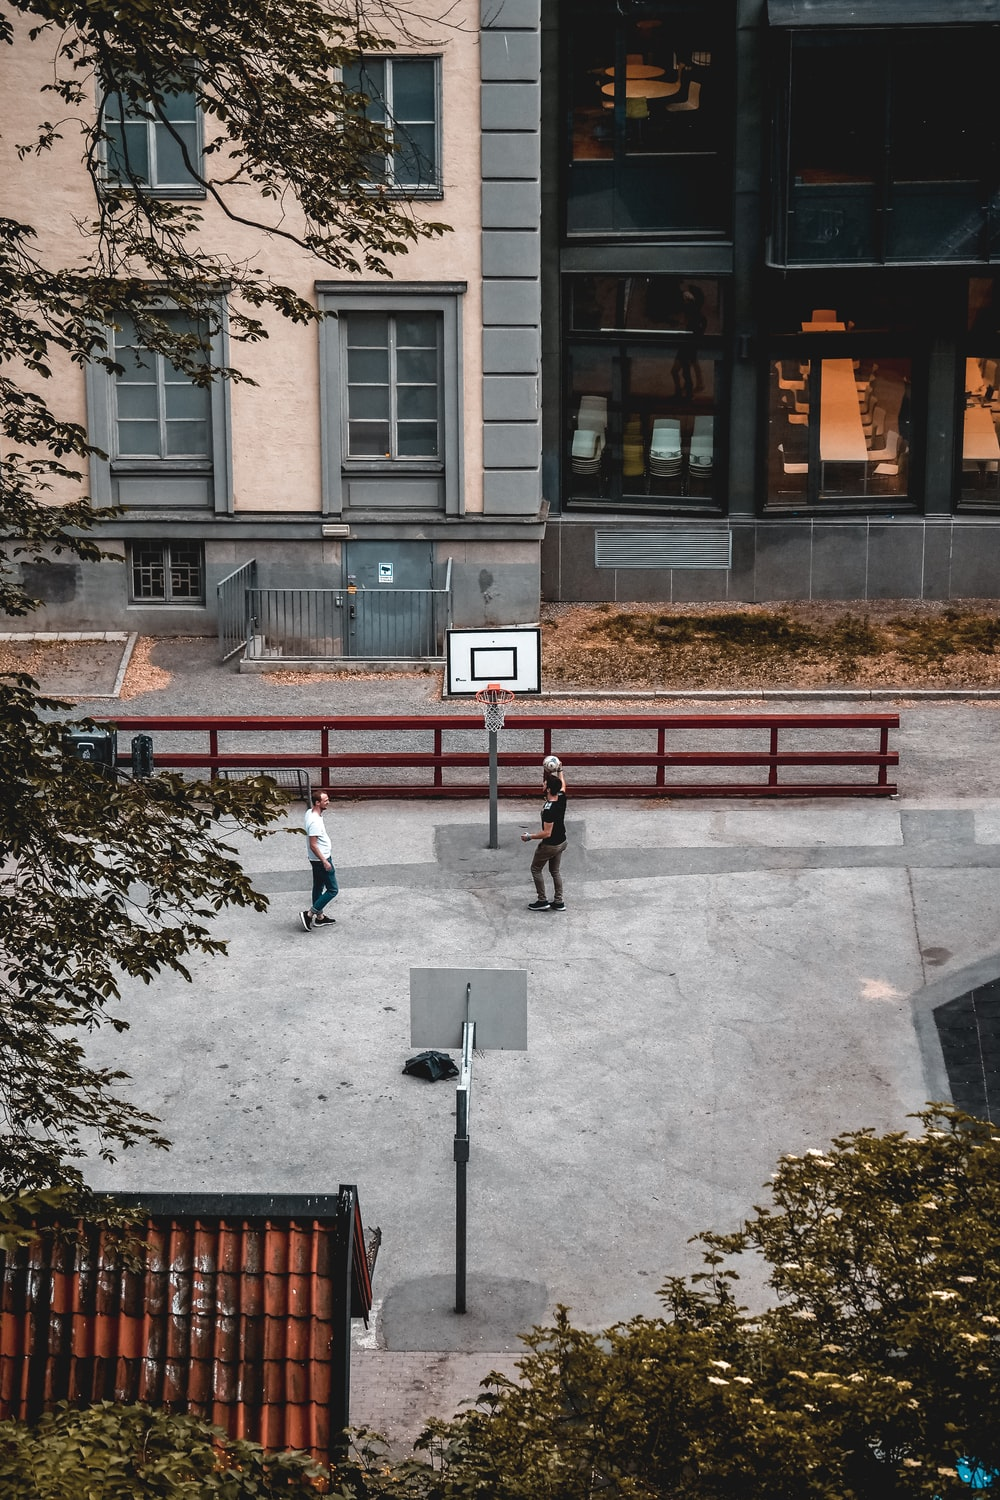 two men playing basketball on basketball court near buildings